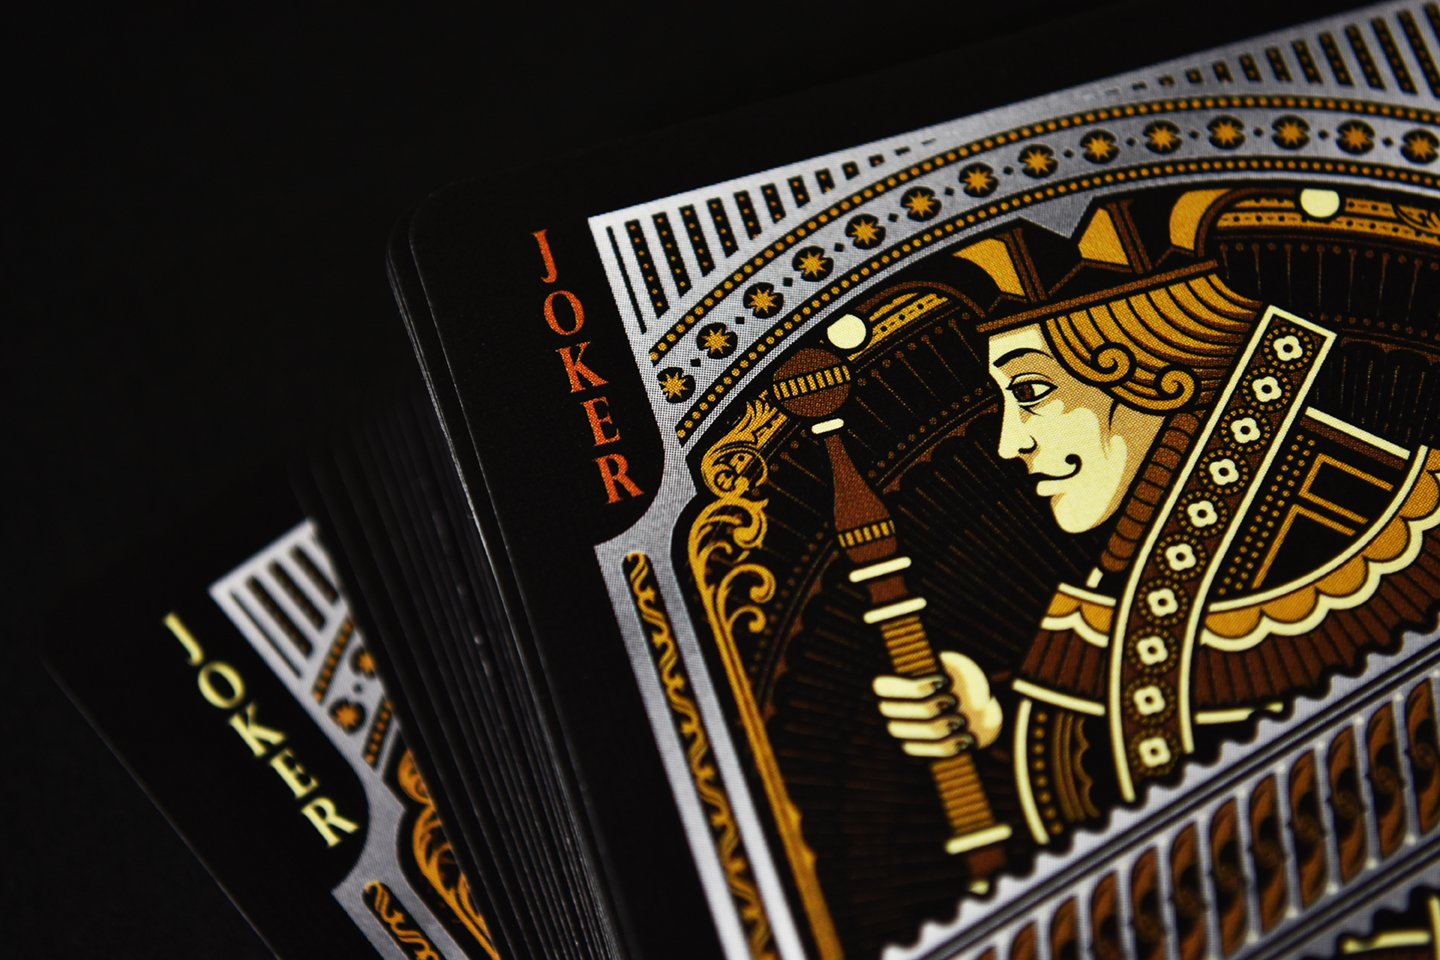 Alloy Copper Playing Cards Poker Deck Custom Design Foiled Back New by Gamblers Warehouse (Image #5)